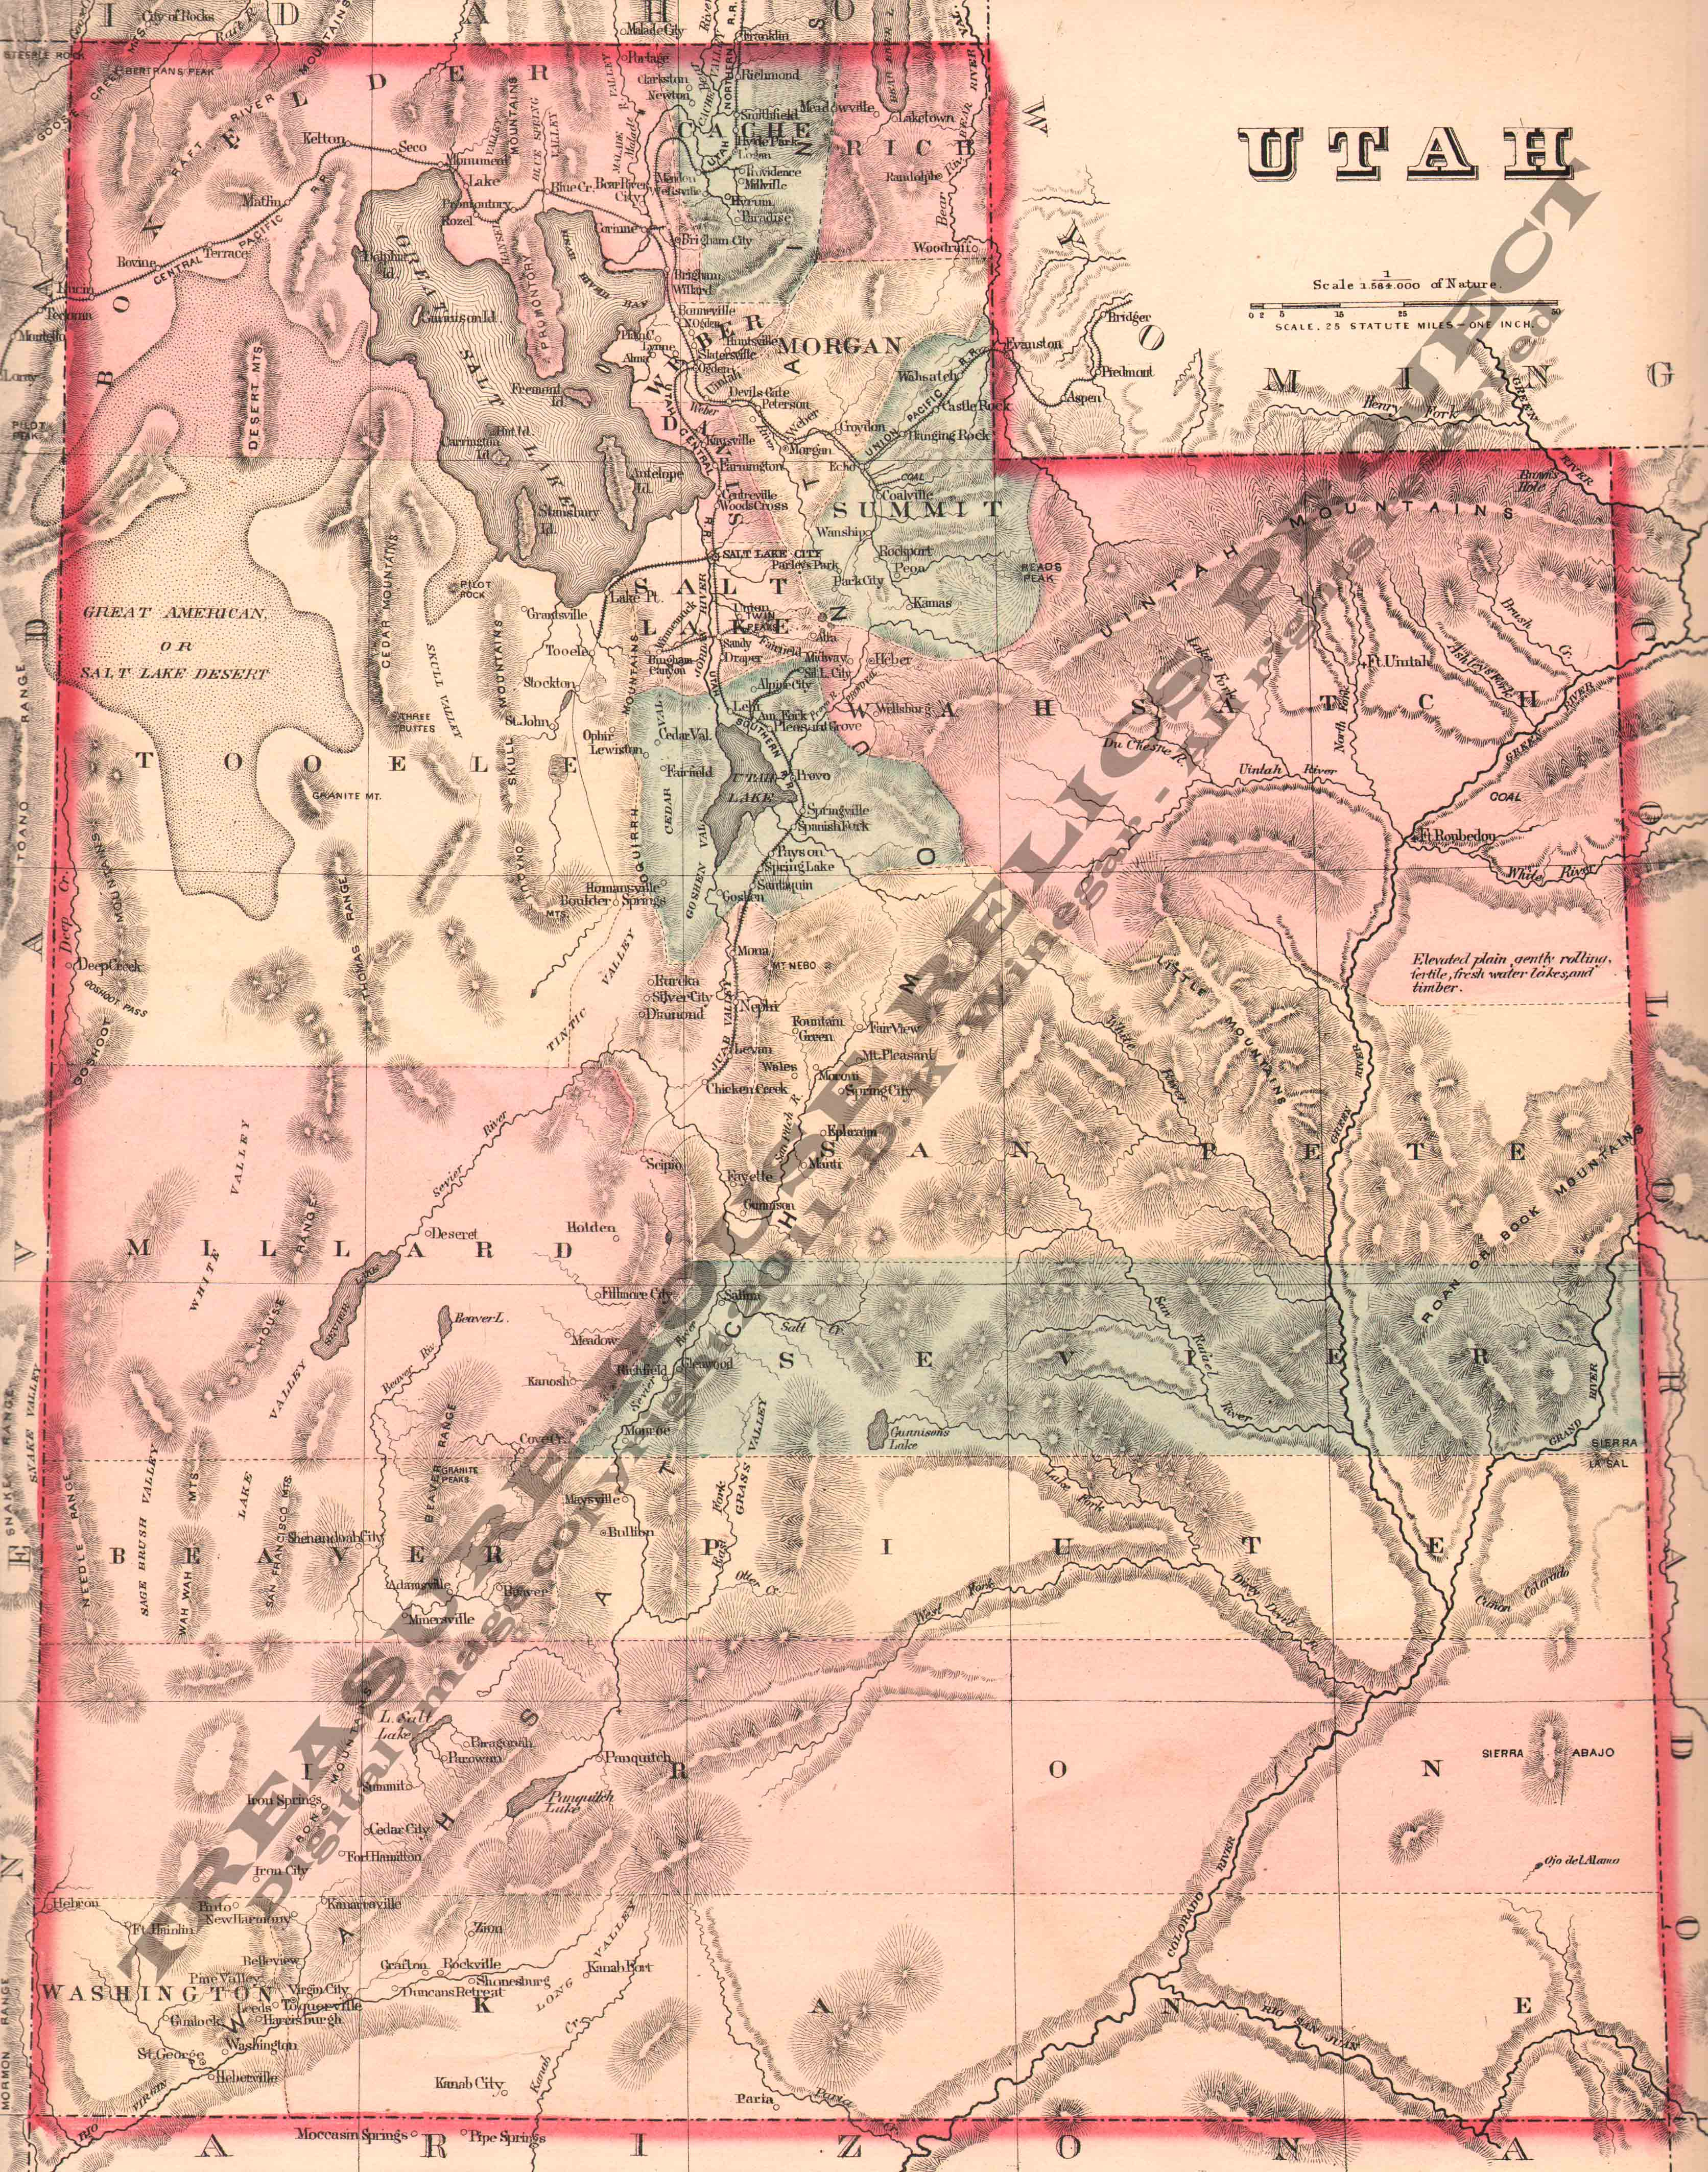 MAP_UTAH_GRAY_ATLAS_1878_300_EMBOSS.jpg